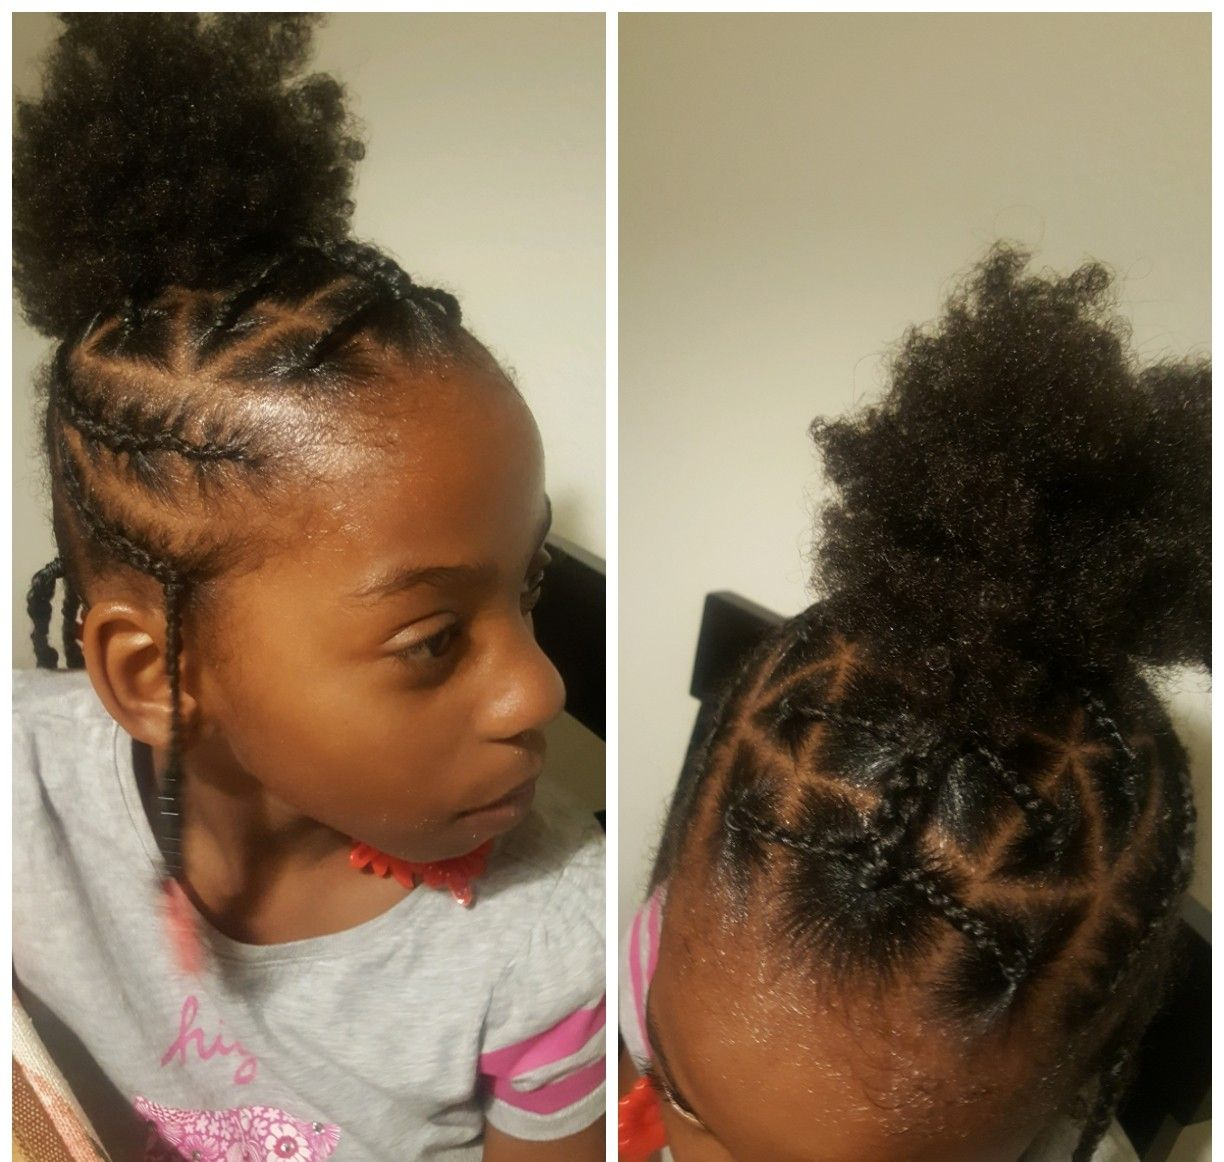 Simple Hair Styles For Little Black Girls Braids Beads And Rubber Bands In Curly And Thick Hair Girl Hairstyles Black Girl Braids Easy Hairstyles